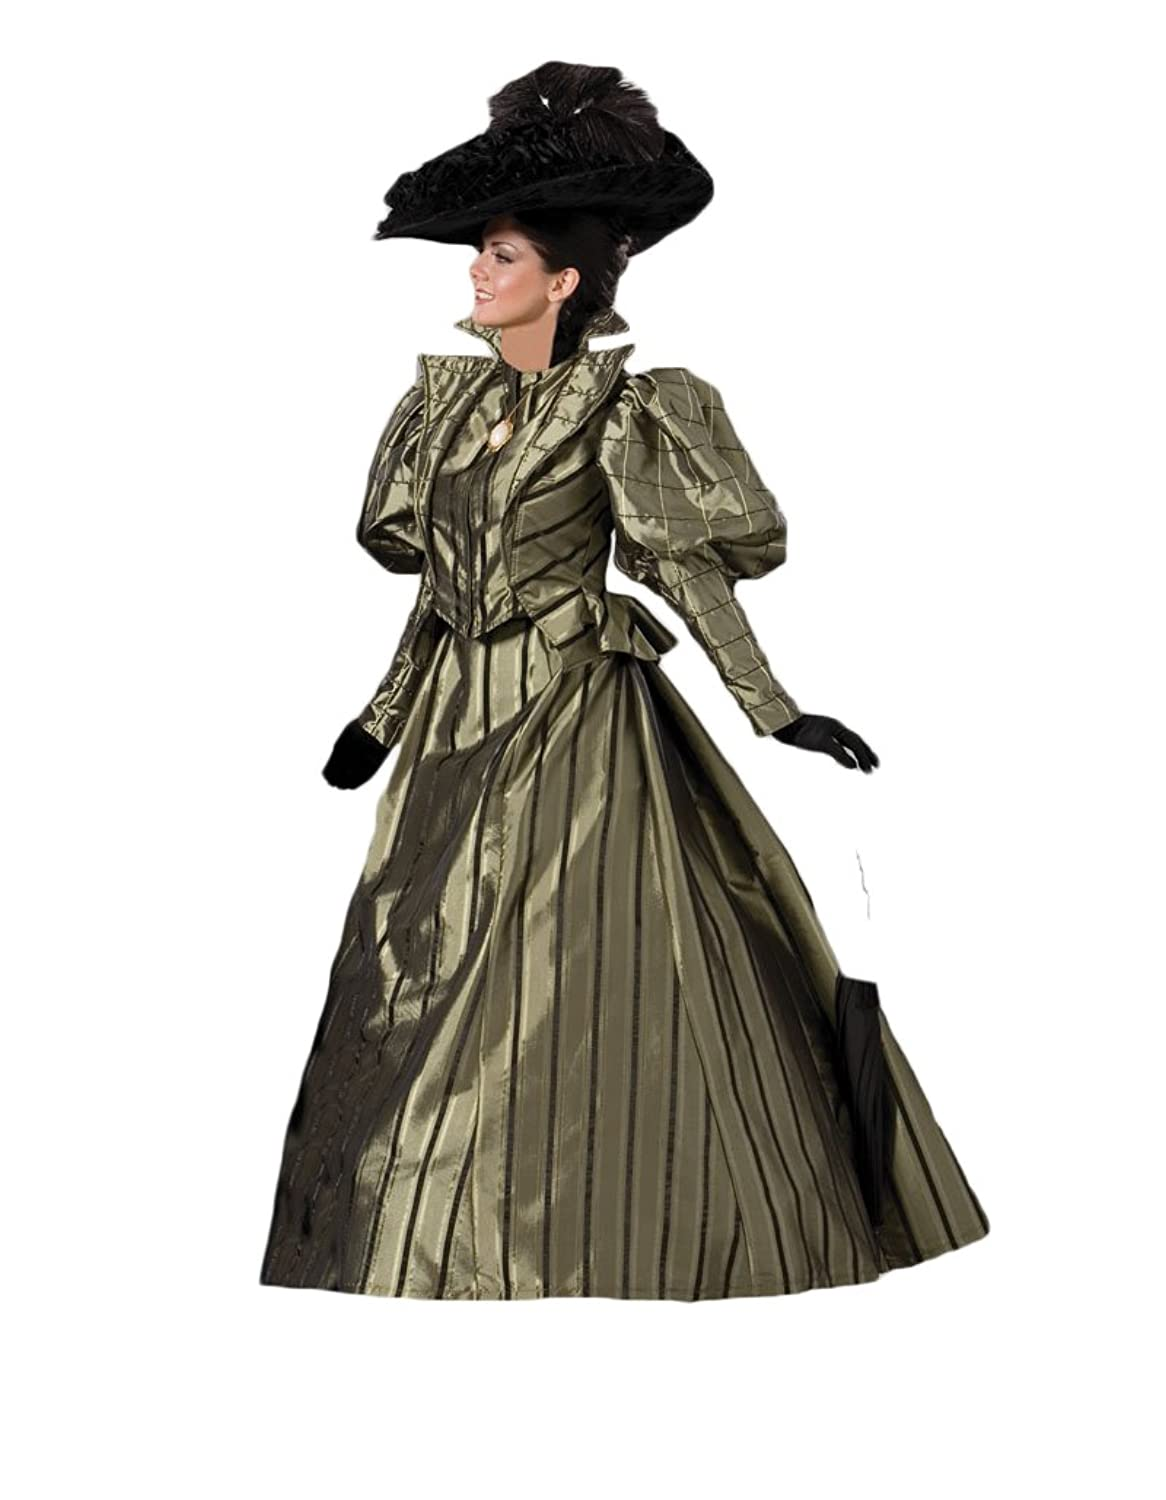 Victorian Dresses, Clothing: Patterns, Costumes, Custom Dresses Womens Victorian Era Dress Theater Costume $379.99 AT vintagedancer.com